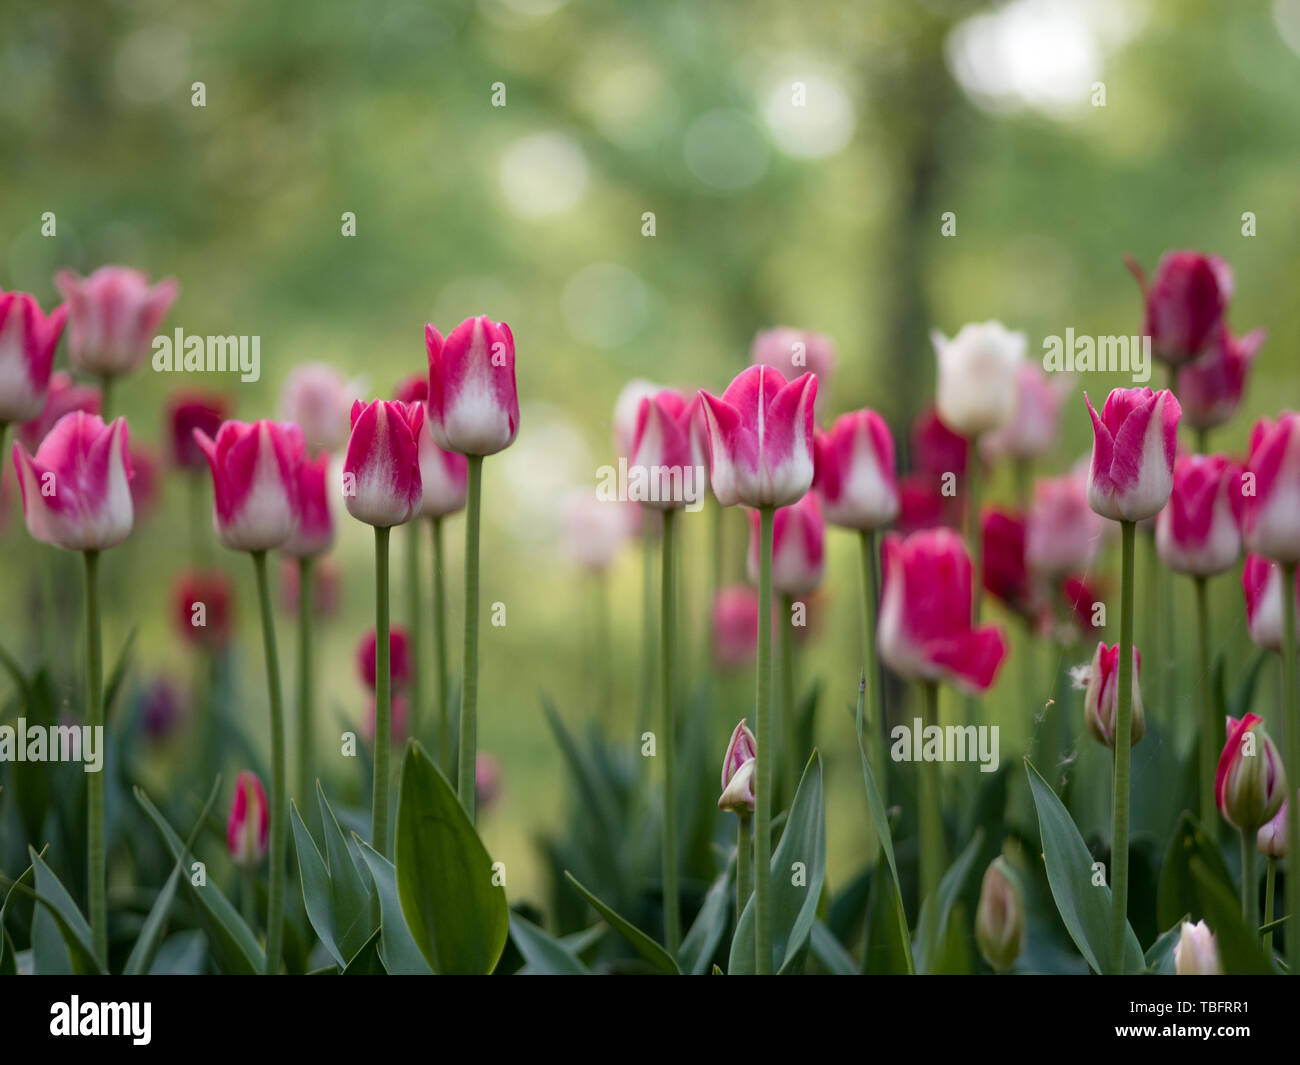 Close-up of white and pink two tones tulips blooming in the meadow, blurred background. - Stock Image